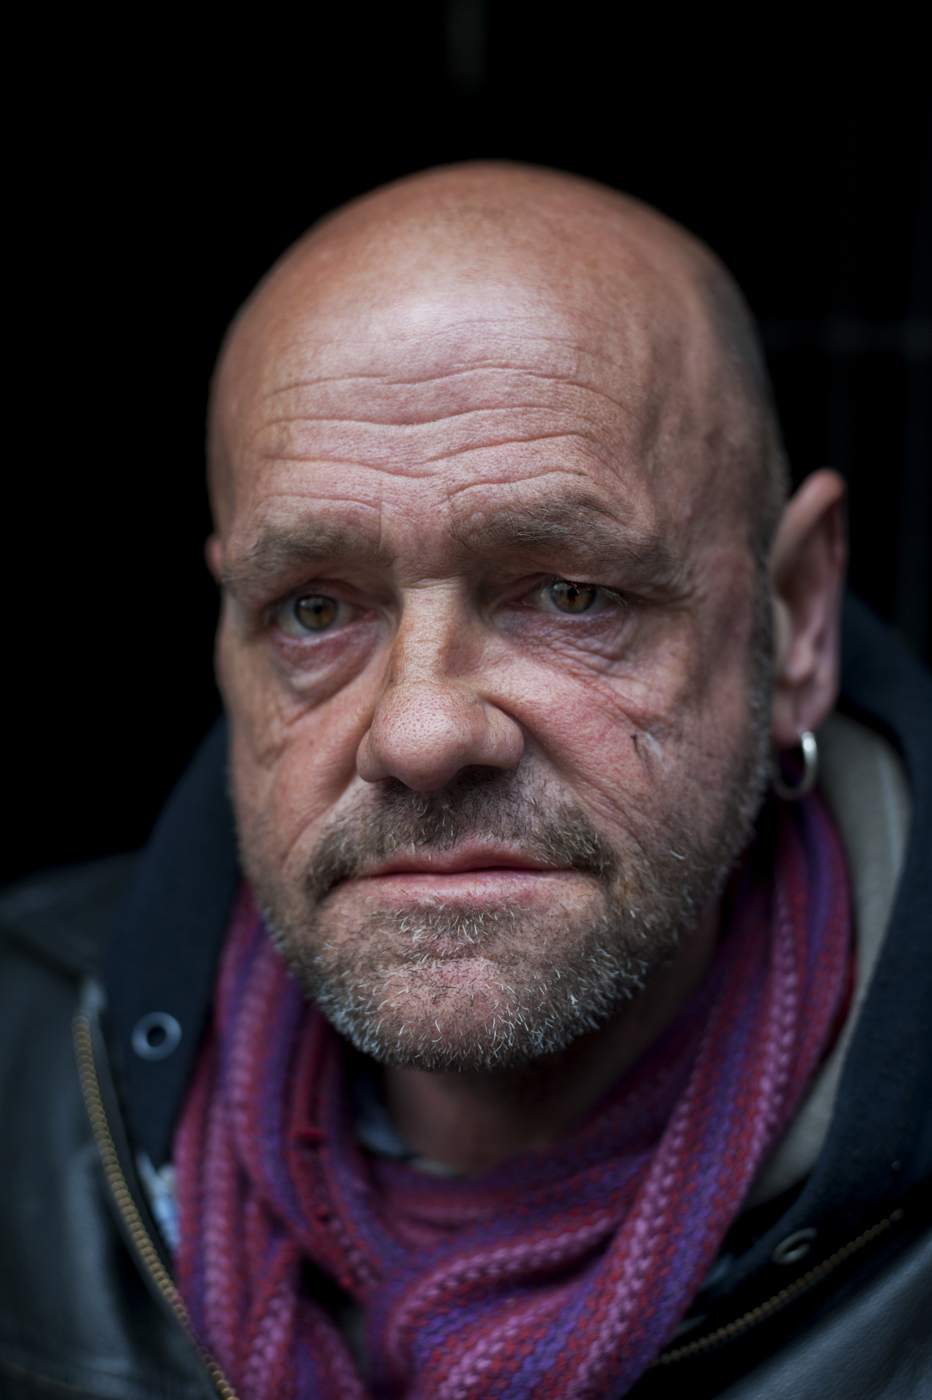 0020_23_homeless_london.jpg